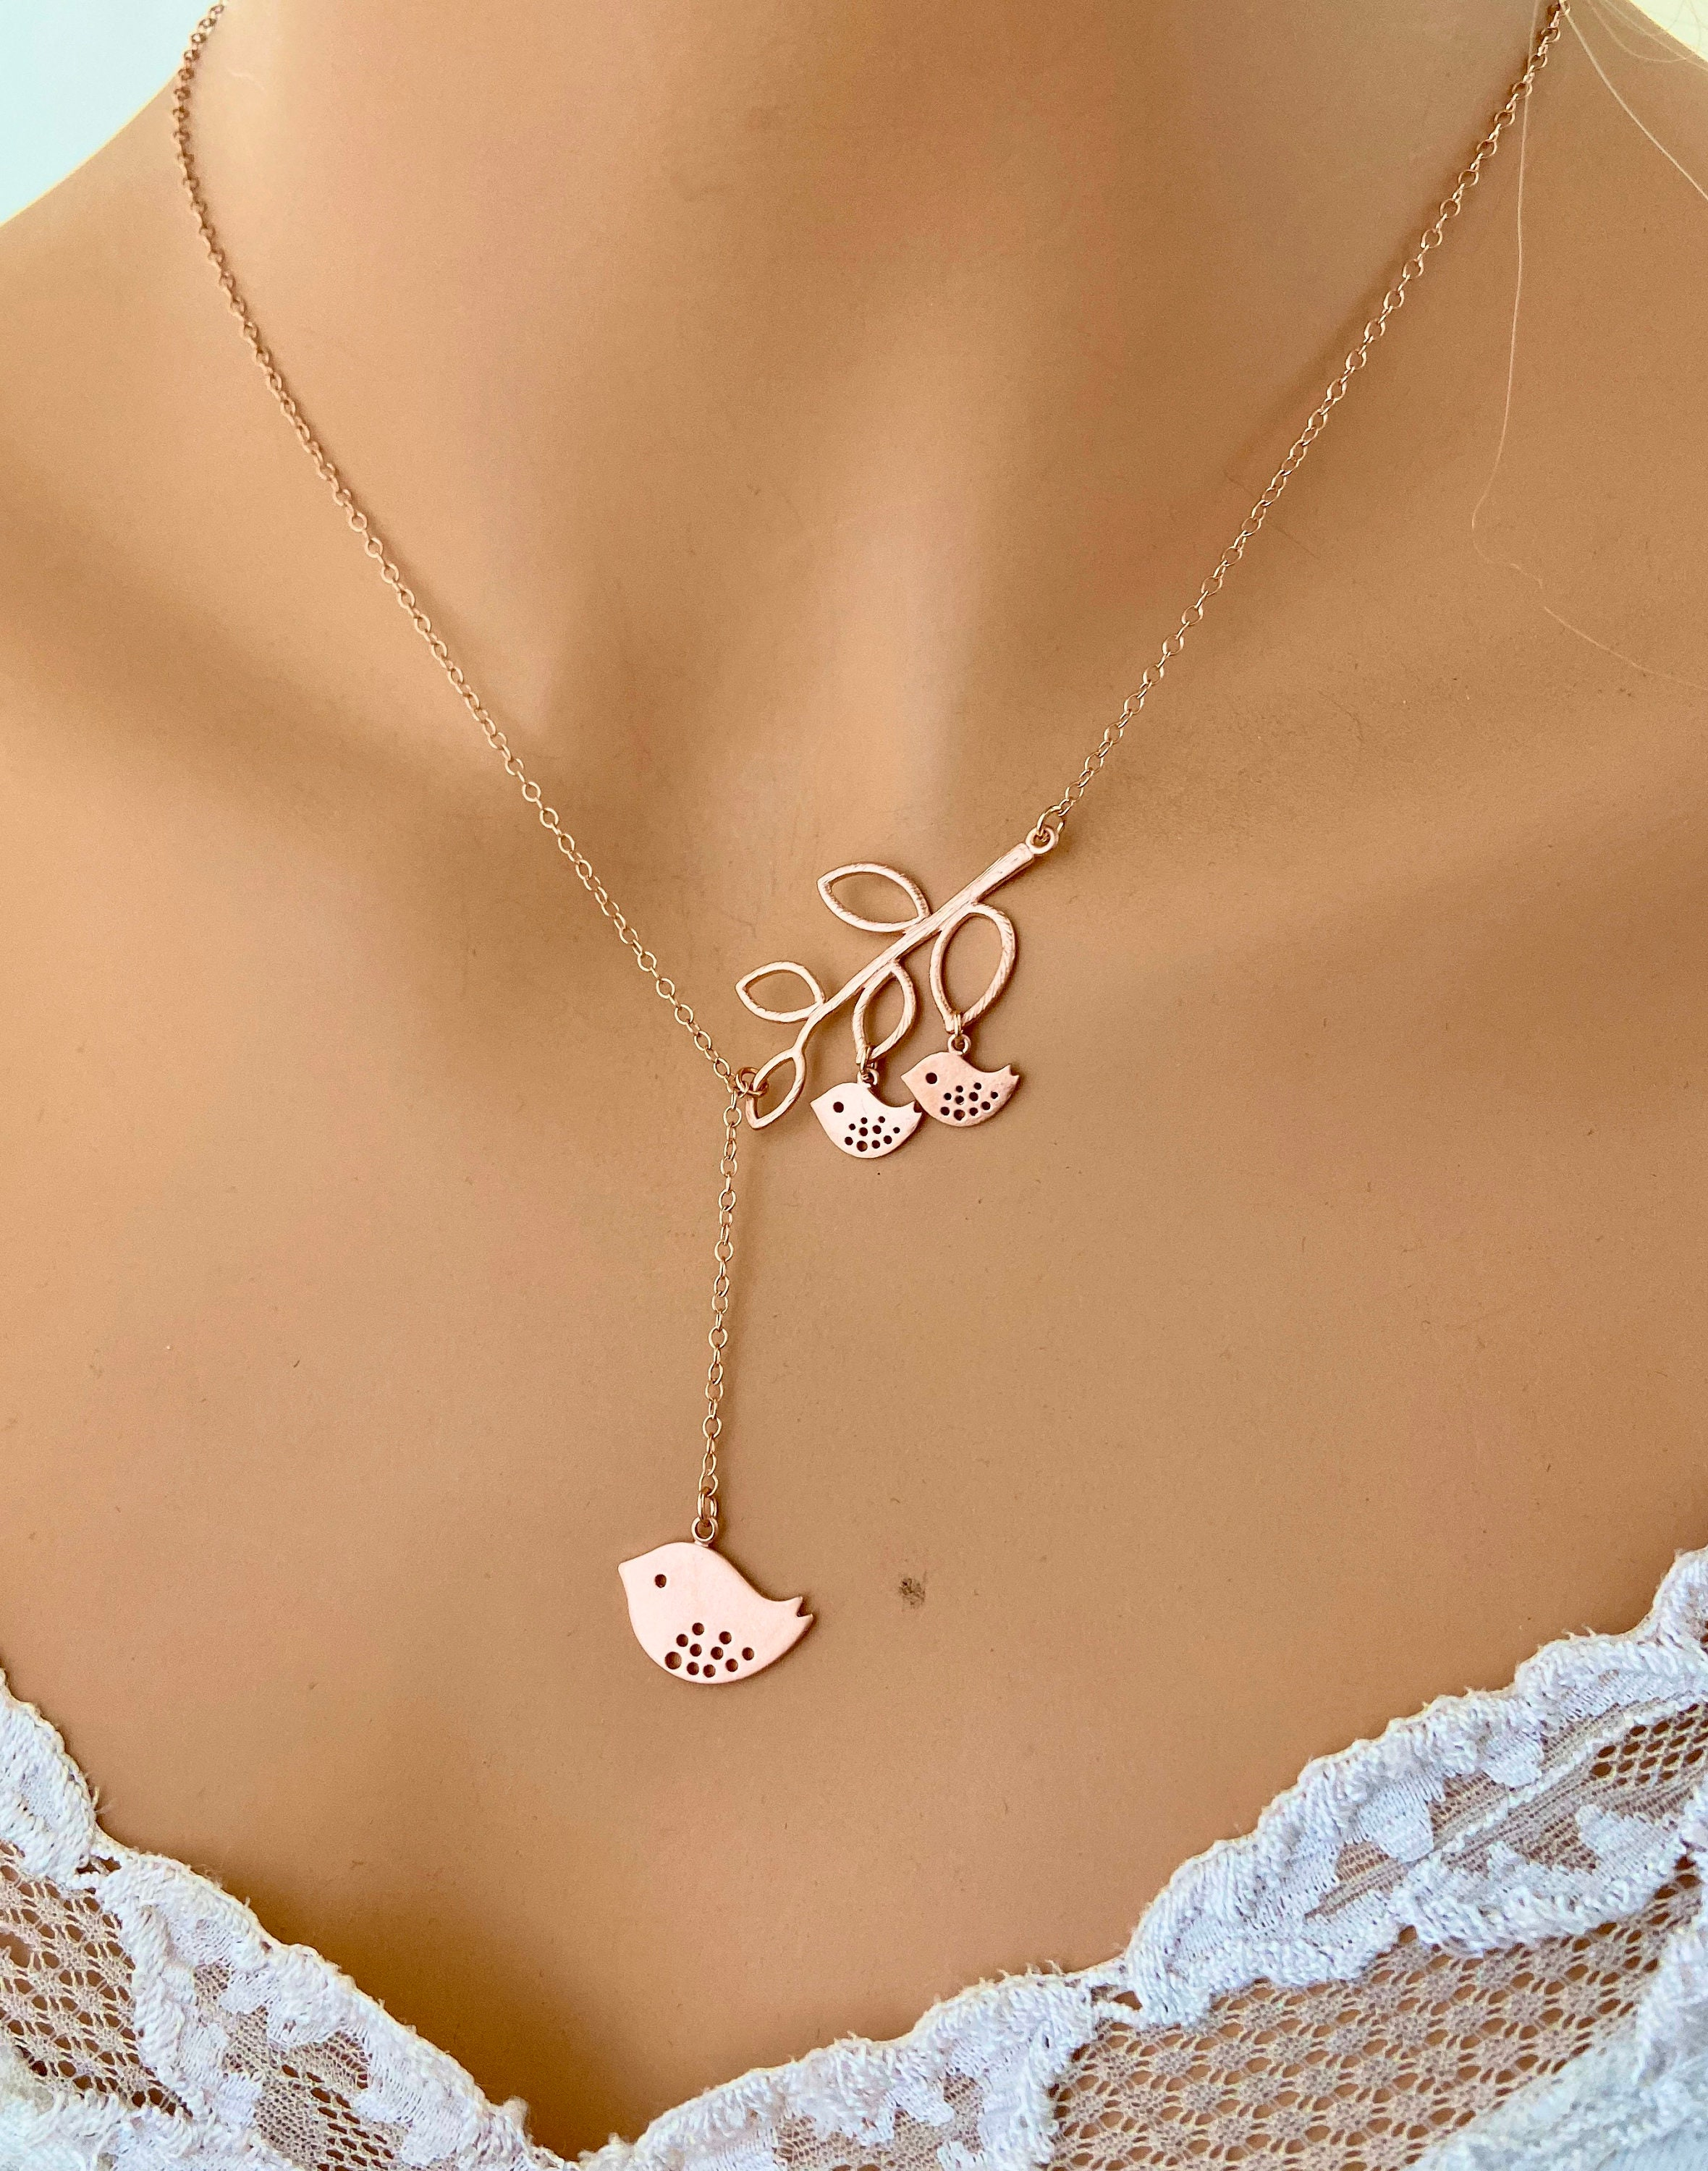 Mother son daughter Necklace ROSE GOLD Jewelry Linked Circle Mother of two husband wife child Gift for Mom Anniversary